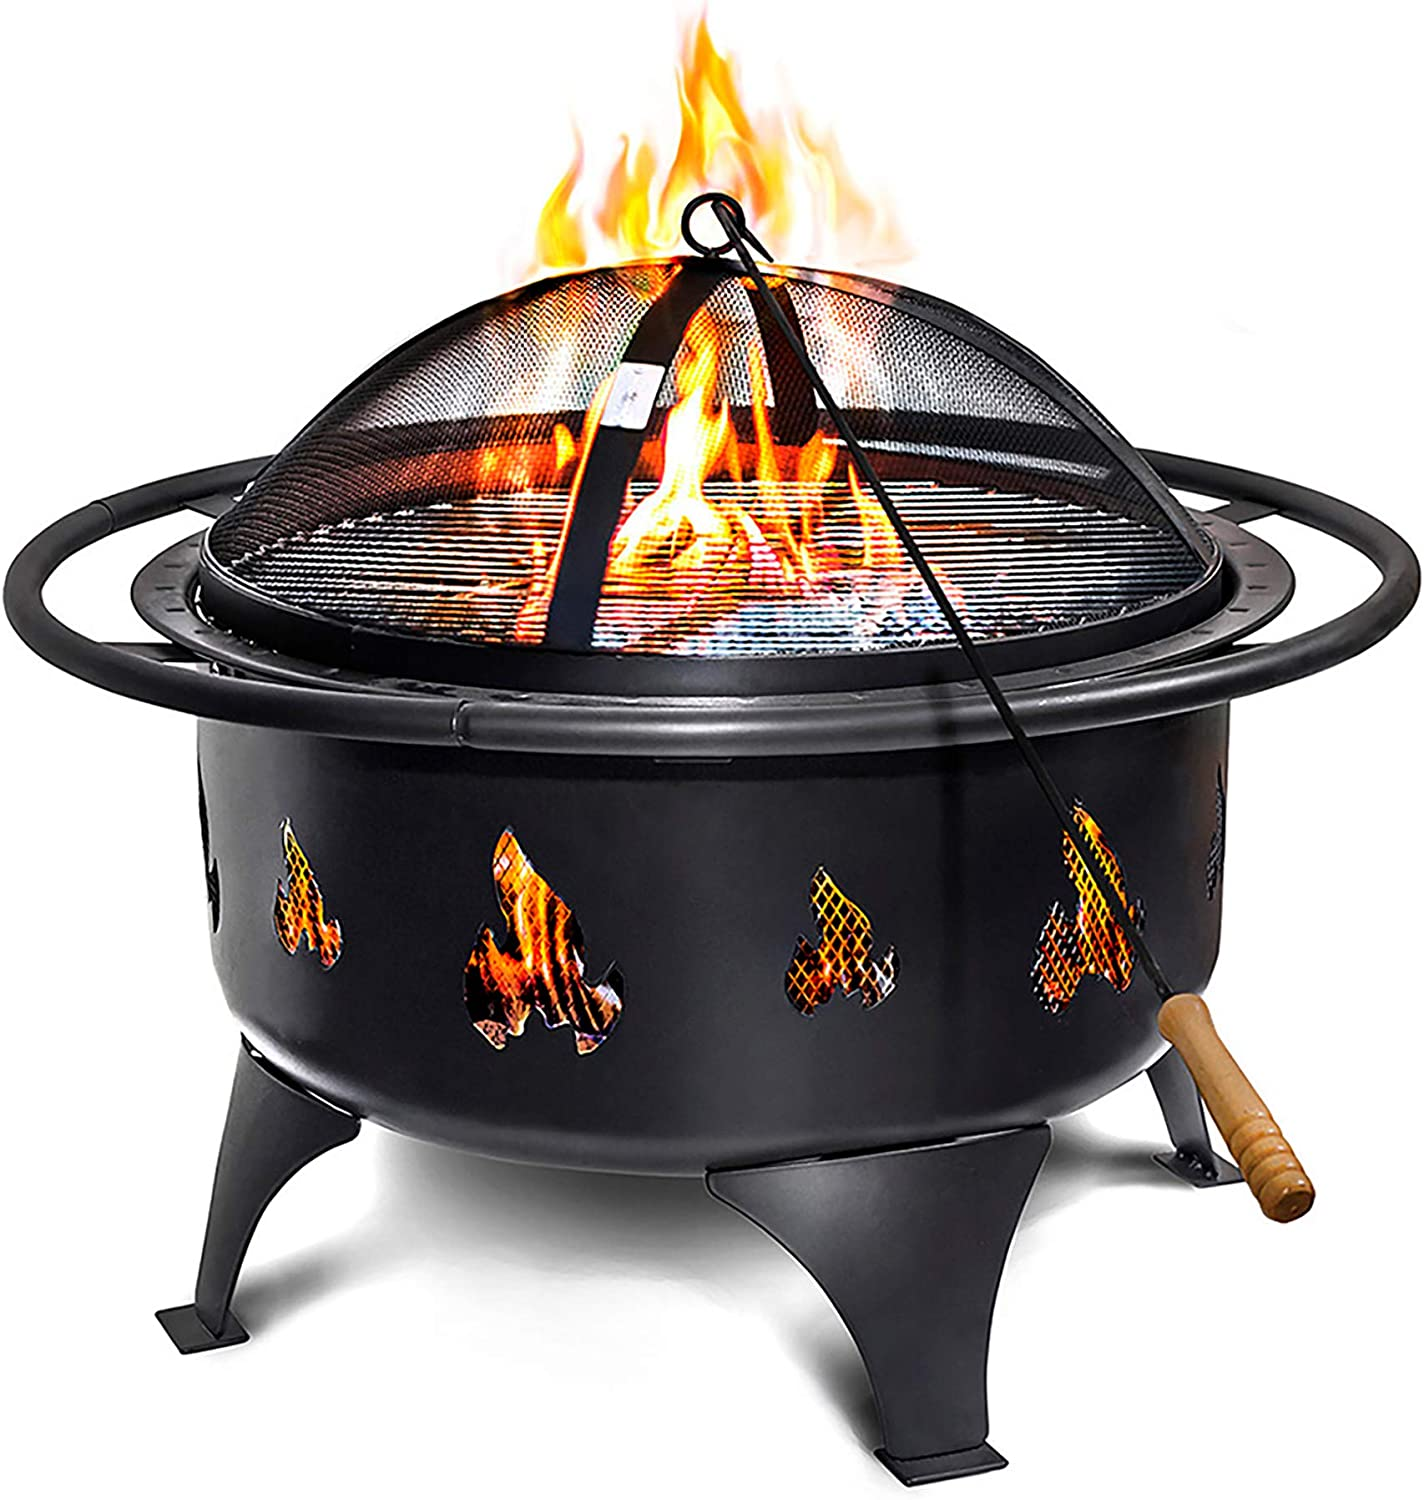 Fire Pits Outdoor Wood Burning Portable 24 Easy Clean Fire Pit W Grate Wood Poker Fire Screen Amazon Ca Patio Lawn Garden